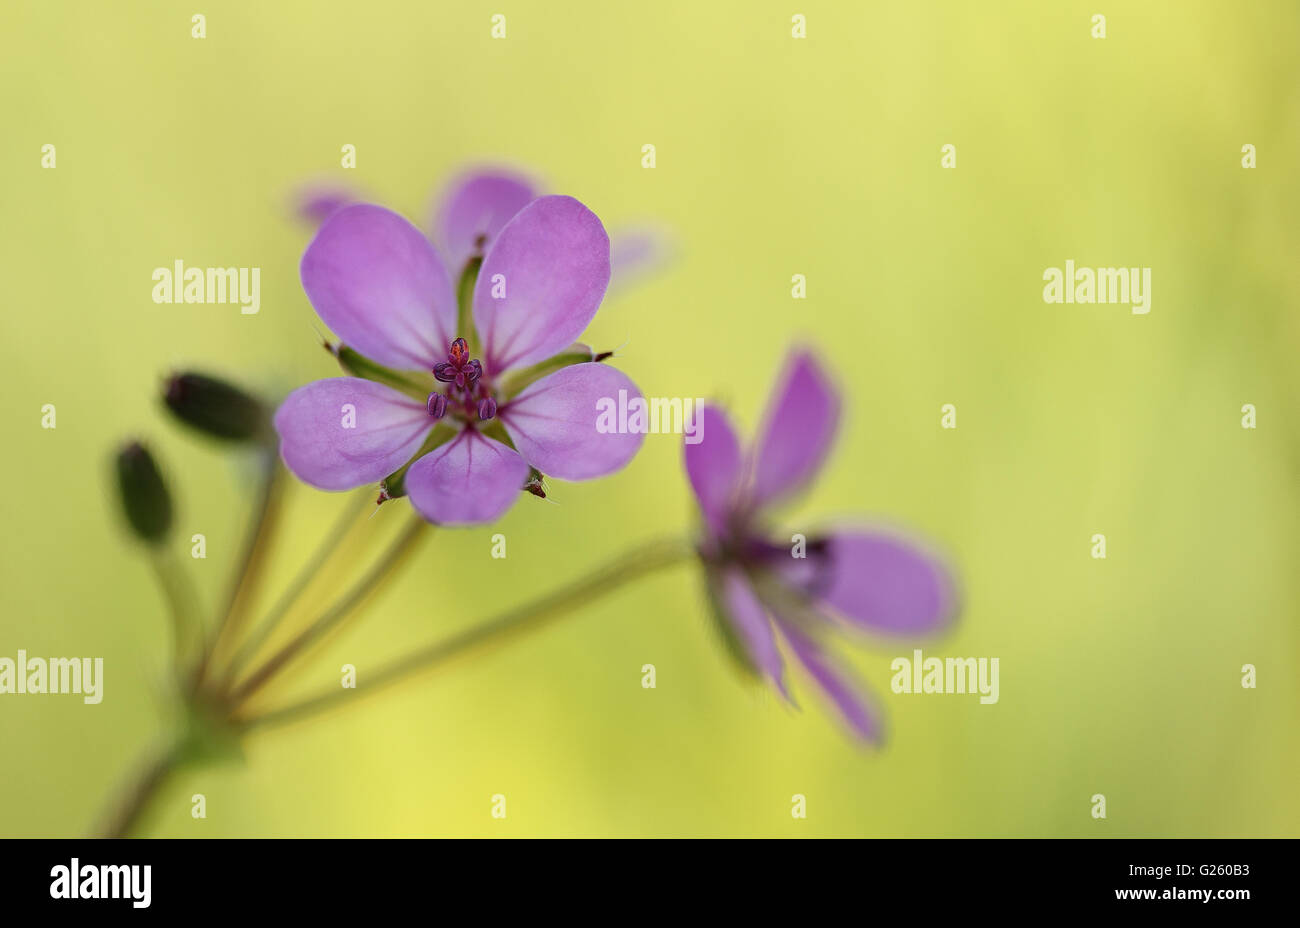 Flower of redstem filaree or redstem stork's bill (Erodium cicutarium) - Stock Image